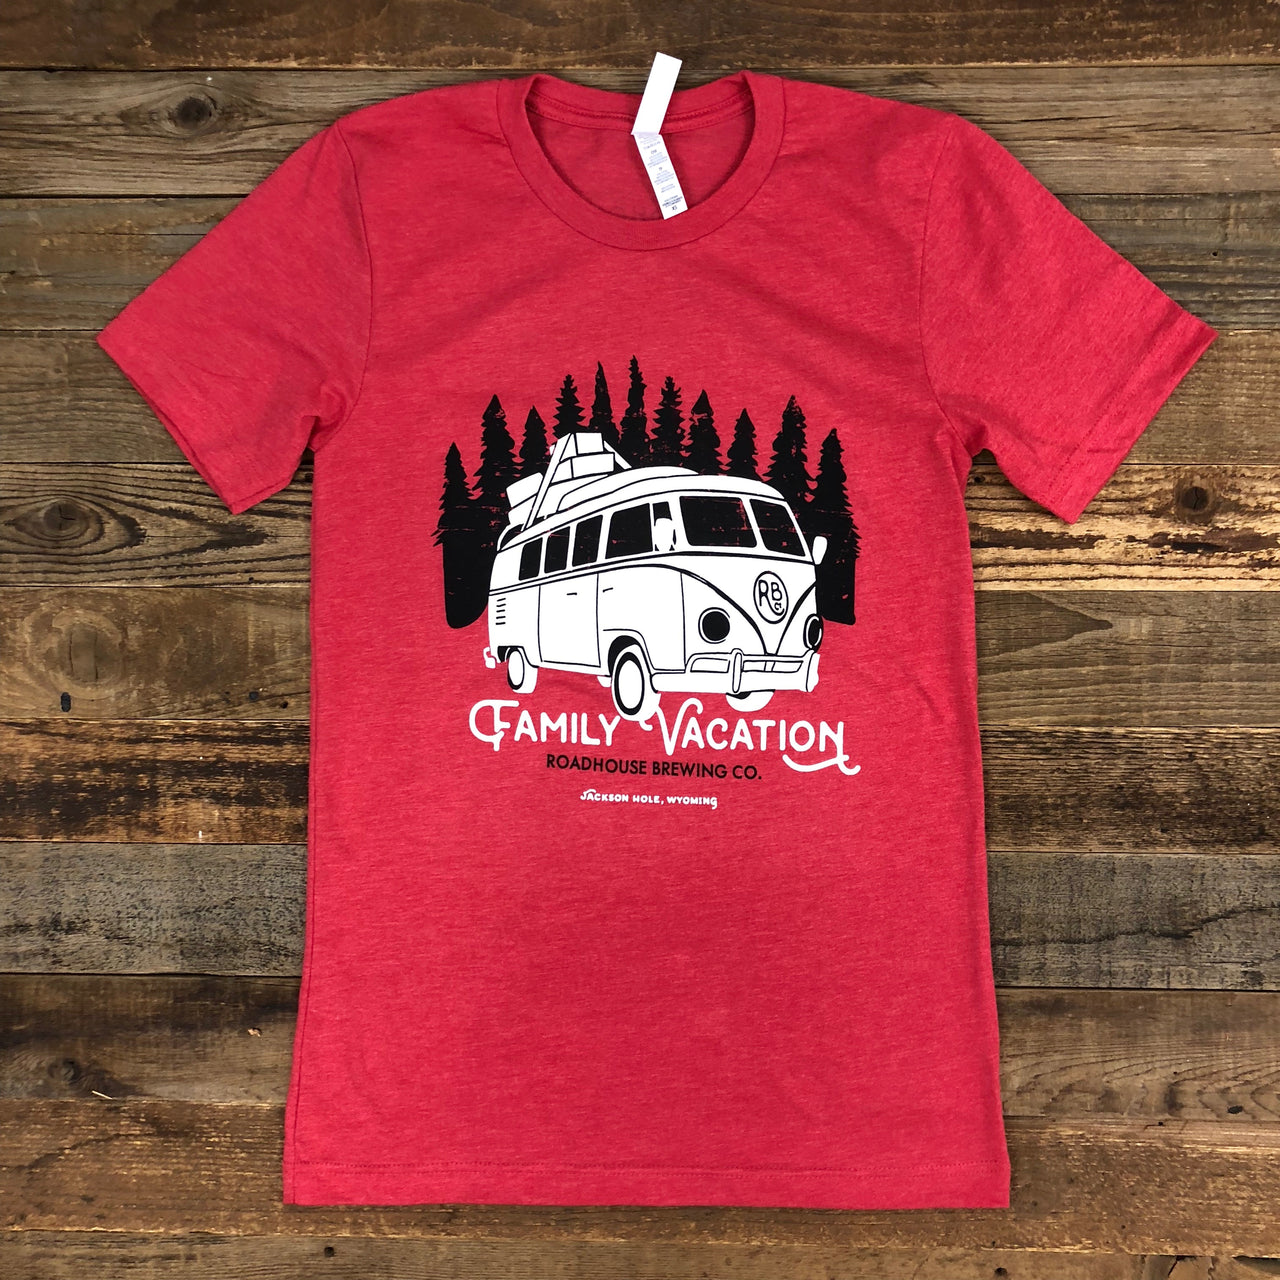 UNISEX The Family Vacation Tee - Red